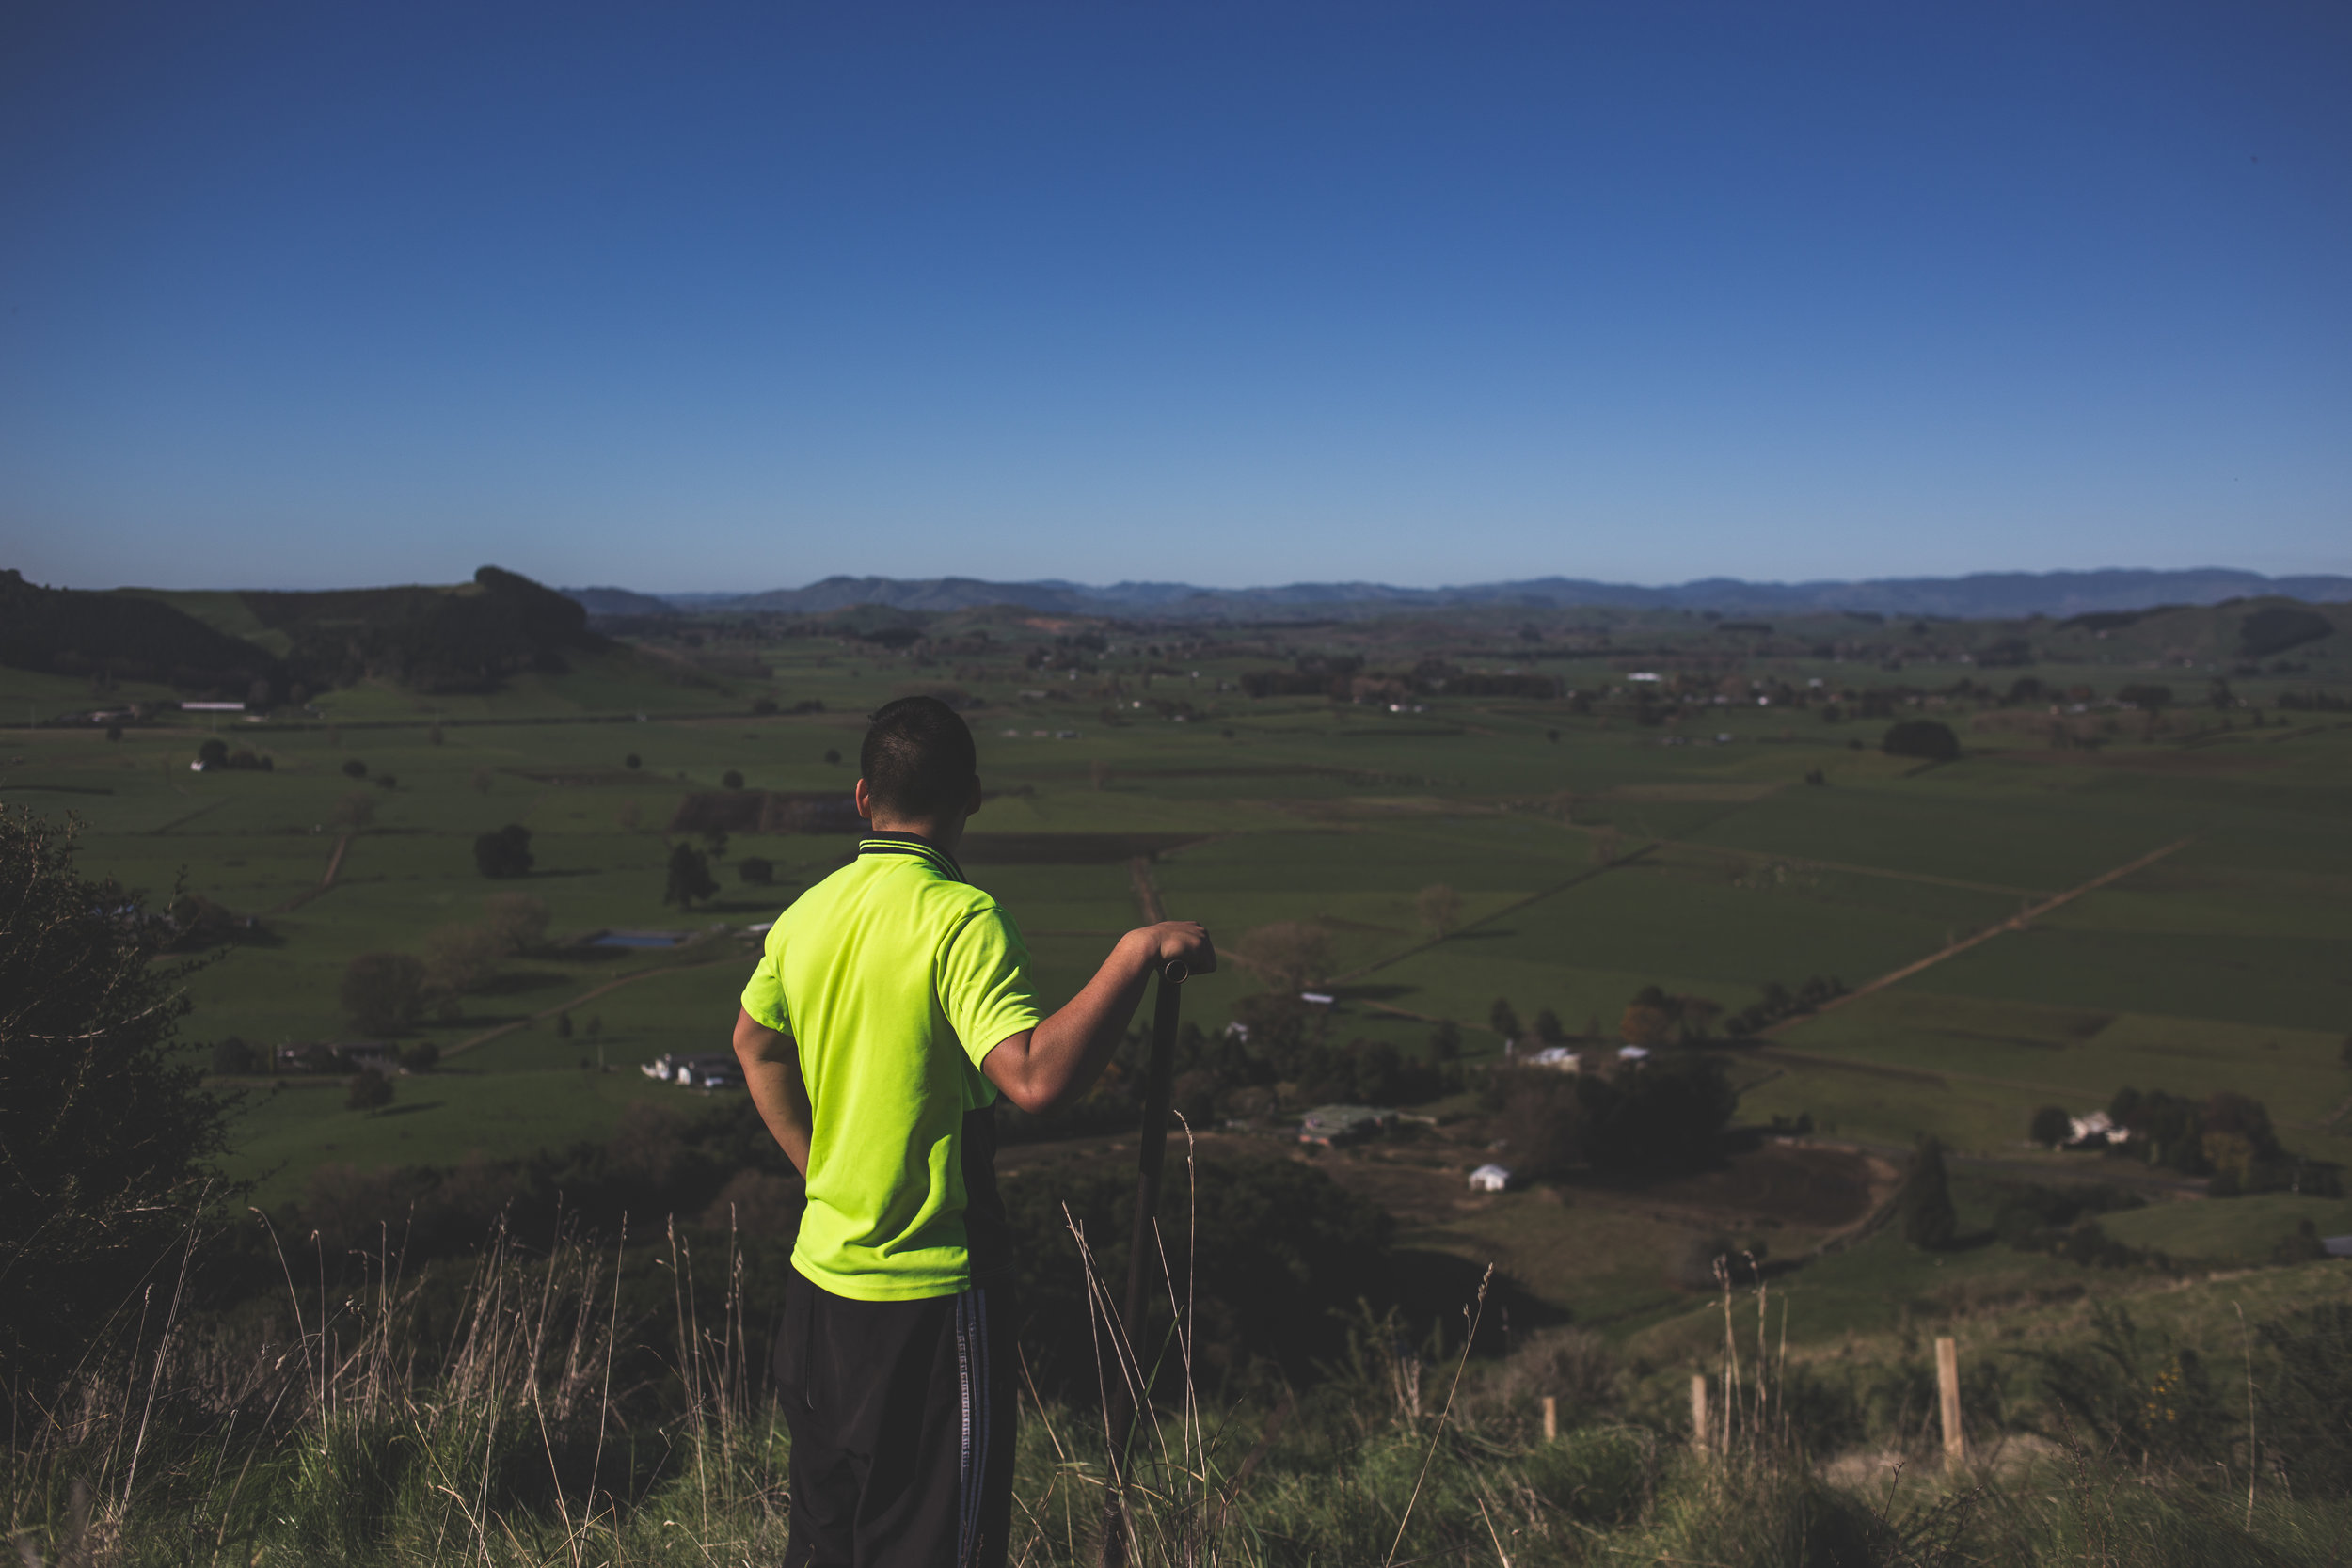 RANGATIRATANGA - SELF-DETERMINED TO TAKE THE LEAD FOR A SUSTAINABLE WORLD